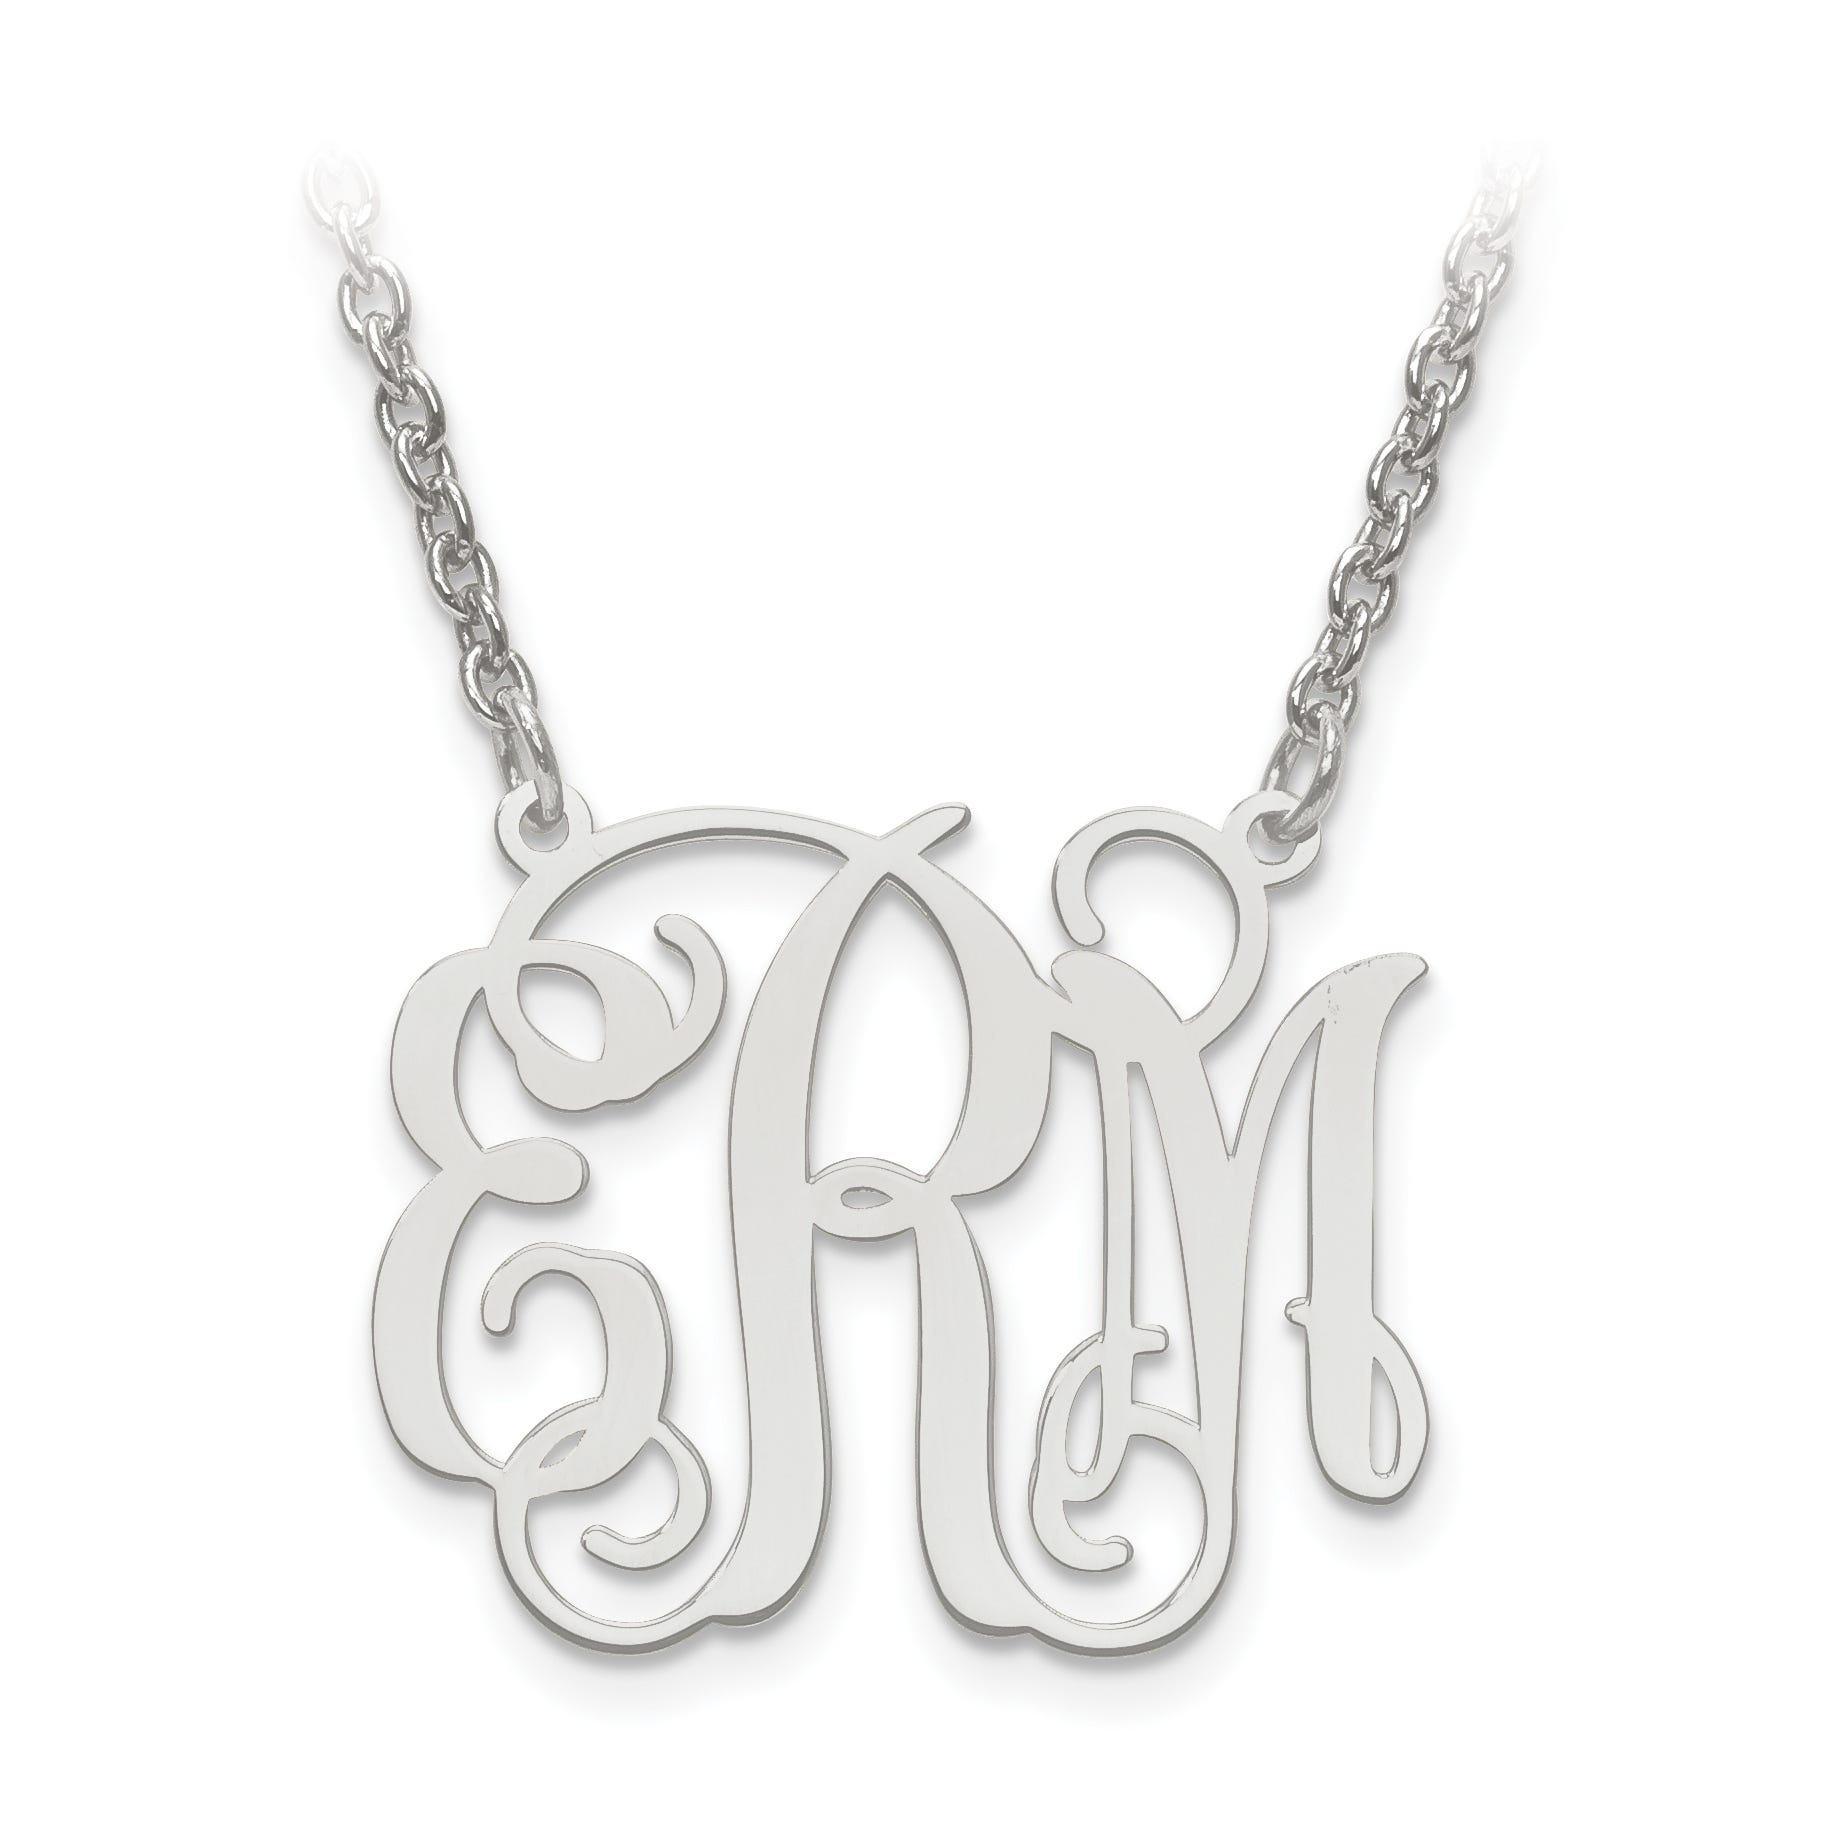 Laser Polished 21x25 Monogram Plate Pendant in Sterling Silver (up to 3 letters)